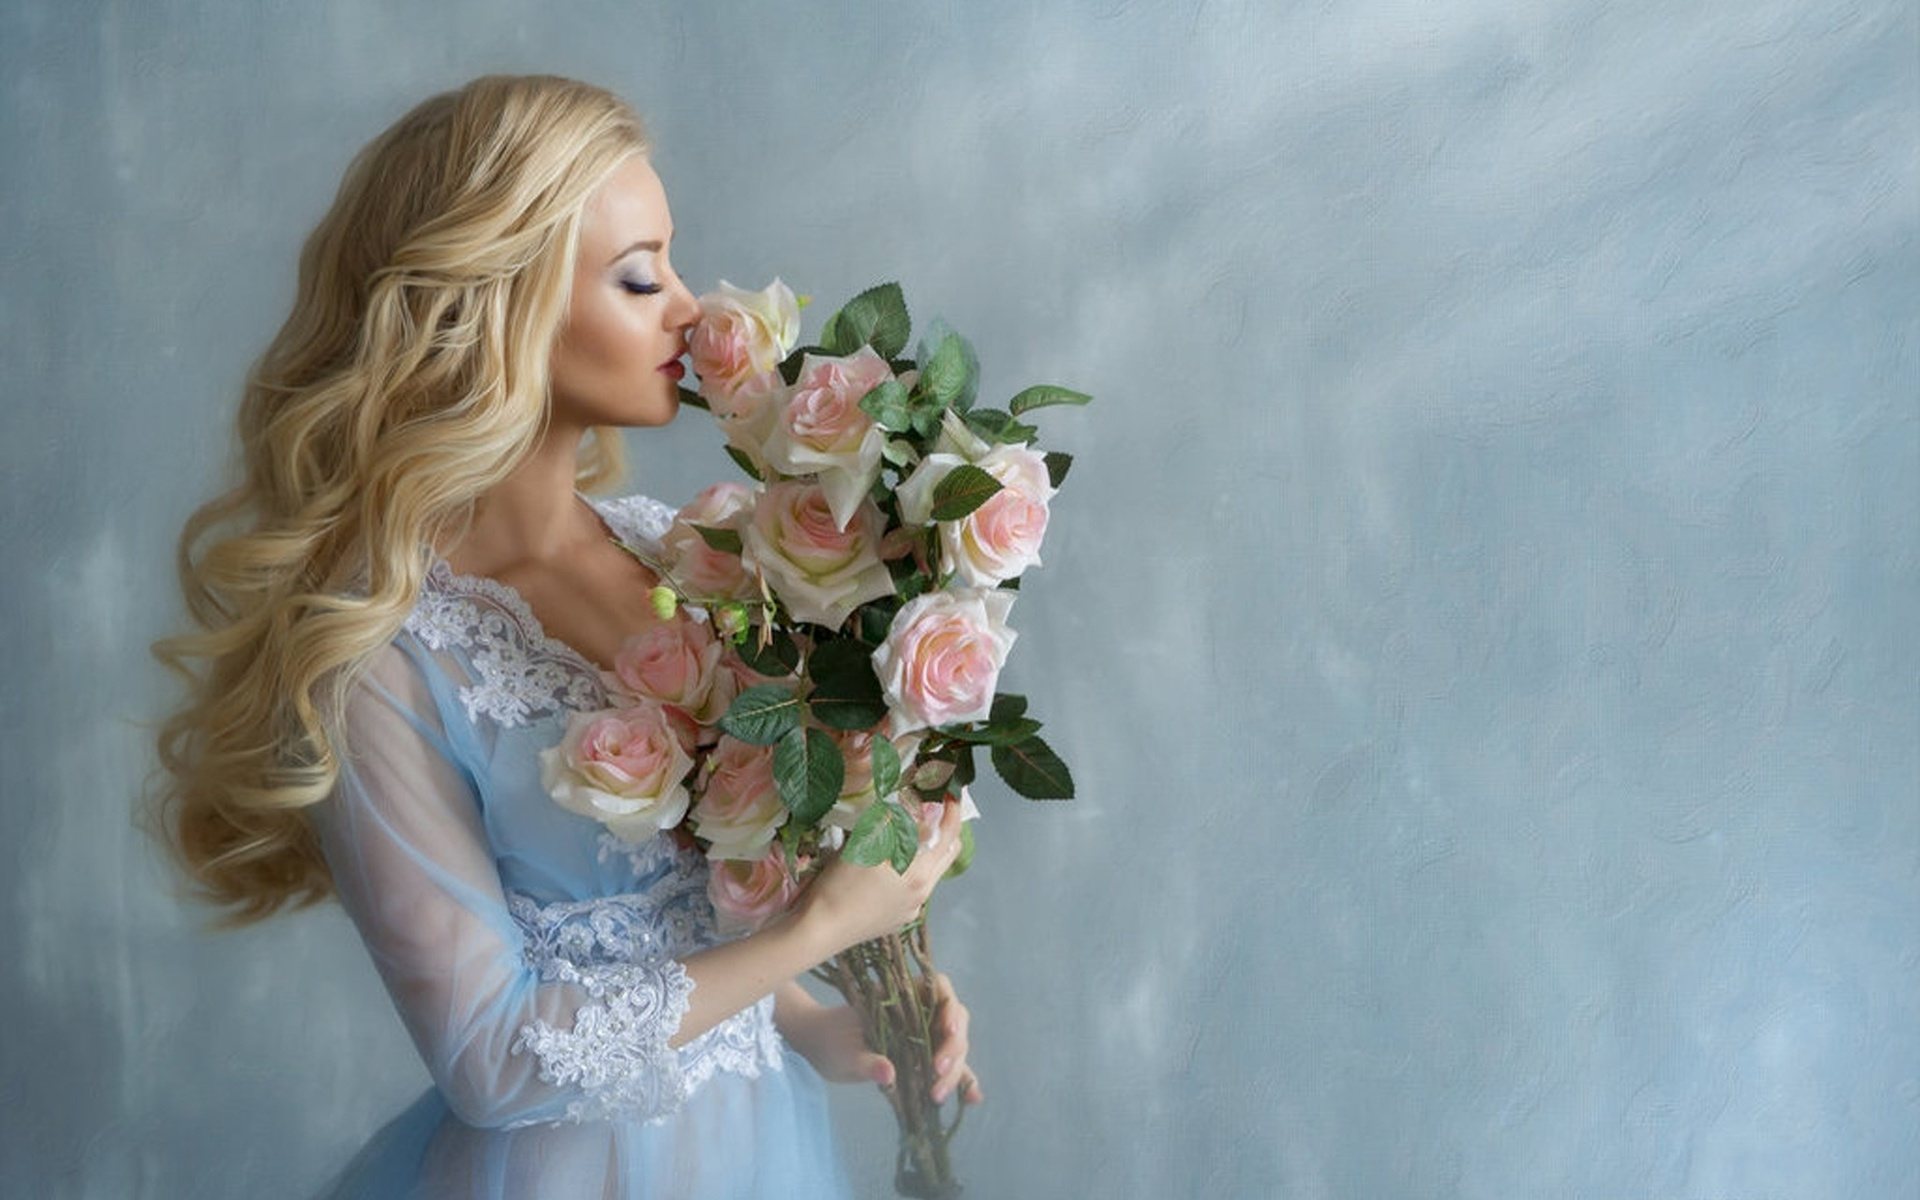 beautiful-blond-with-roses